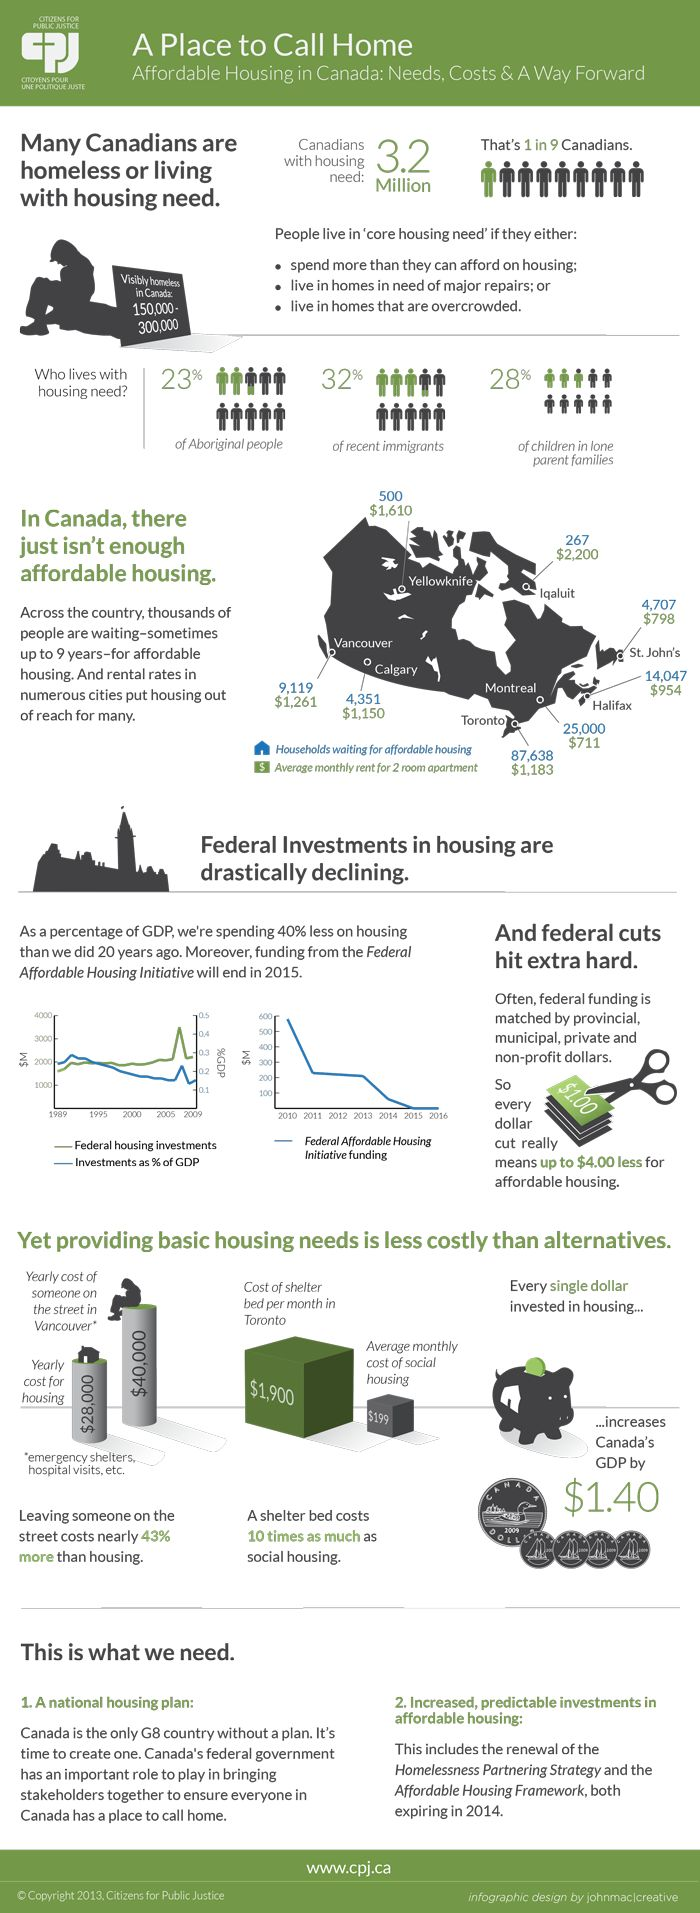 Infographic Wednesday - Affordable Housing in Canada http://www.homelesshub.ca/blog/infographic-wednesday-affordable-housing-canada